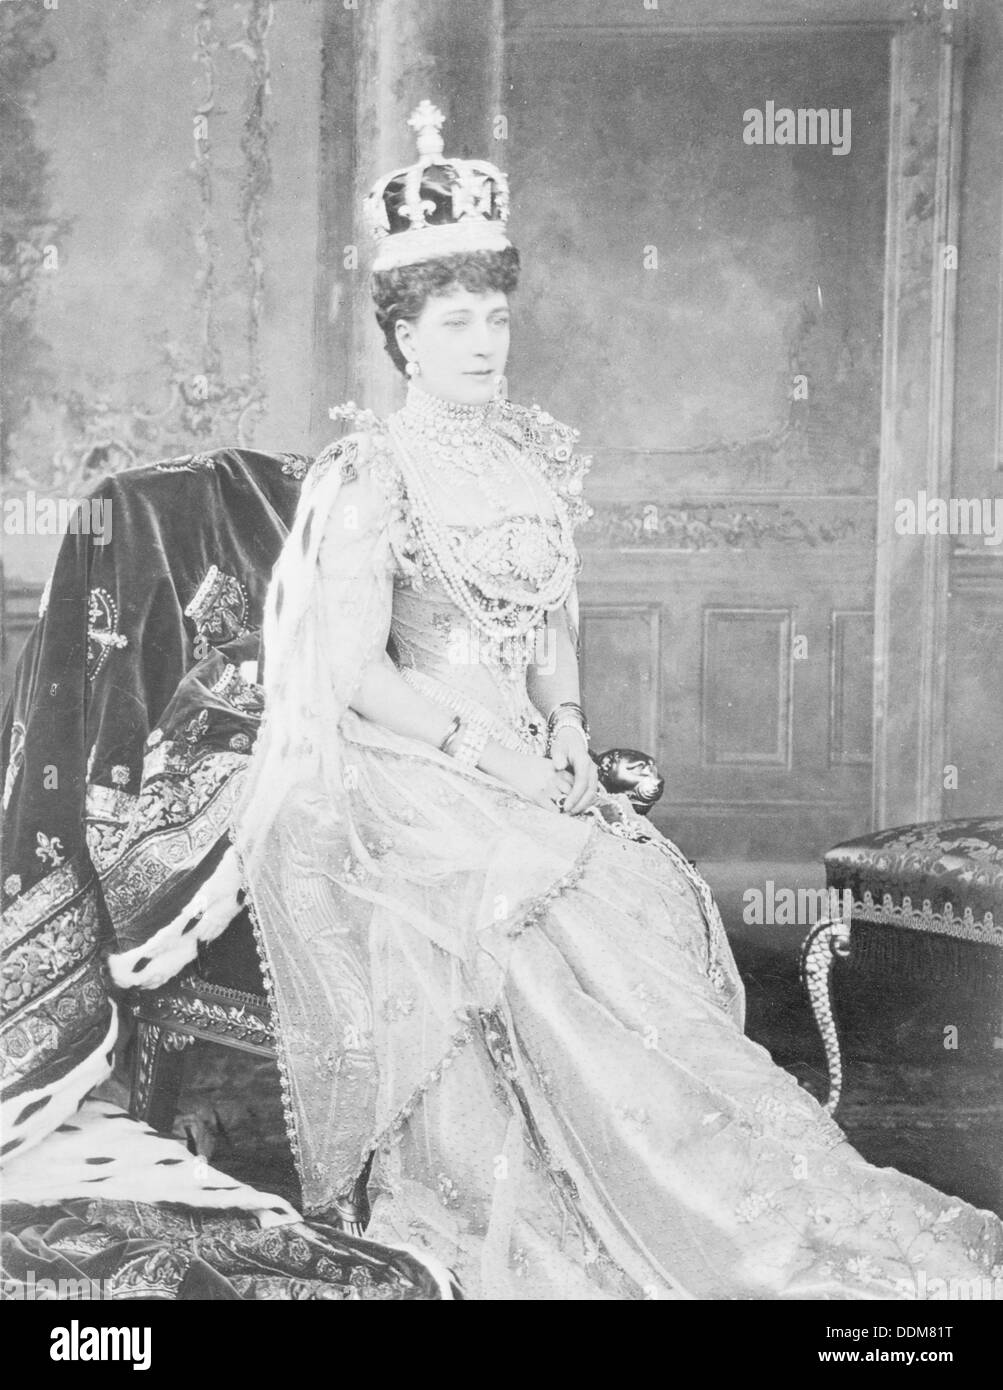 Queen Alexandra, consort of Edward VII, in her Coronation robes, 1902. - Stock Image